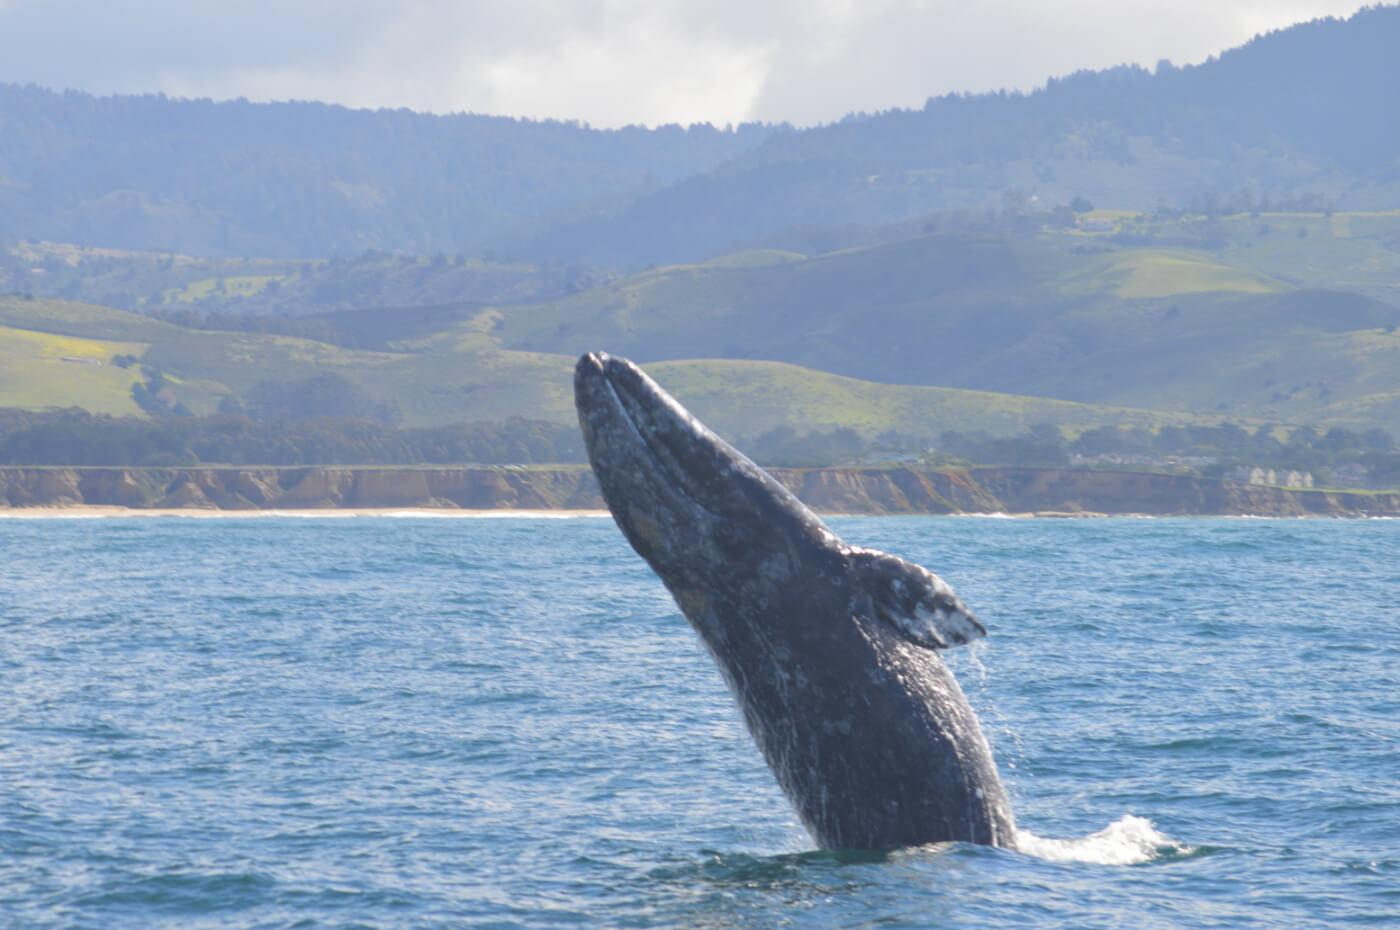 Acrobatic breaching gray whale. Photo taken on March 17th. © Peter Winch